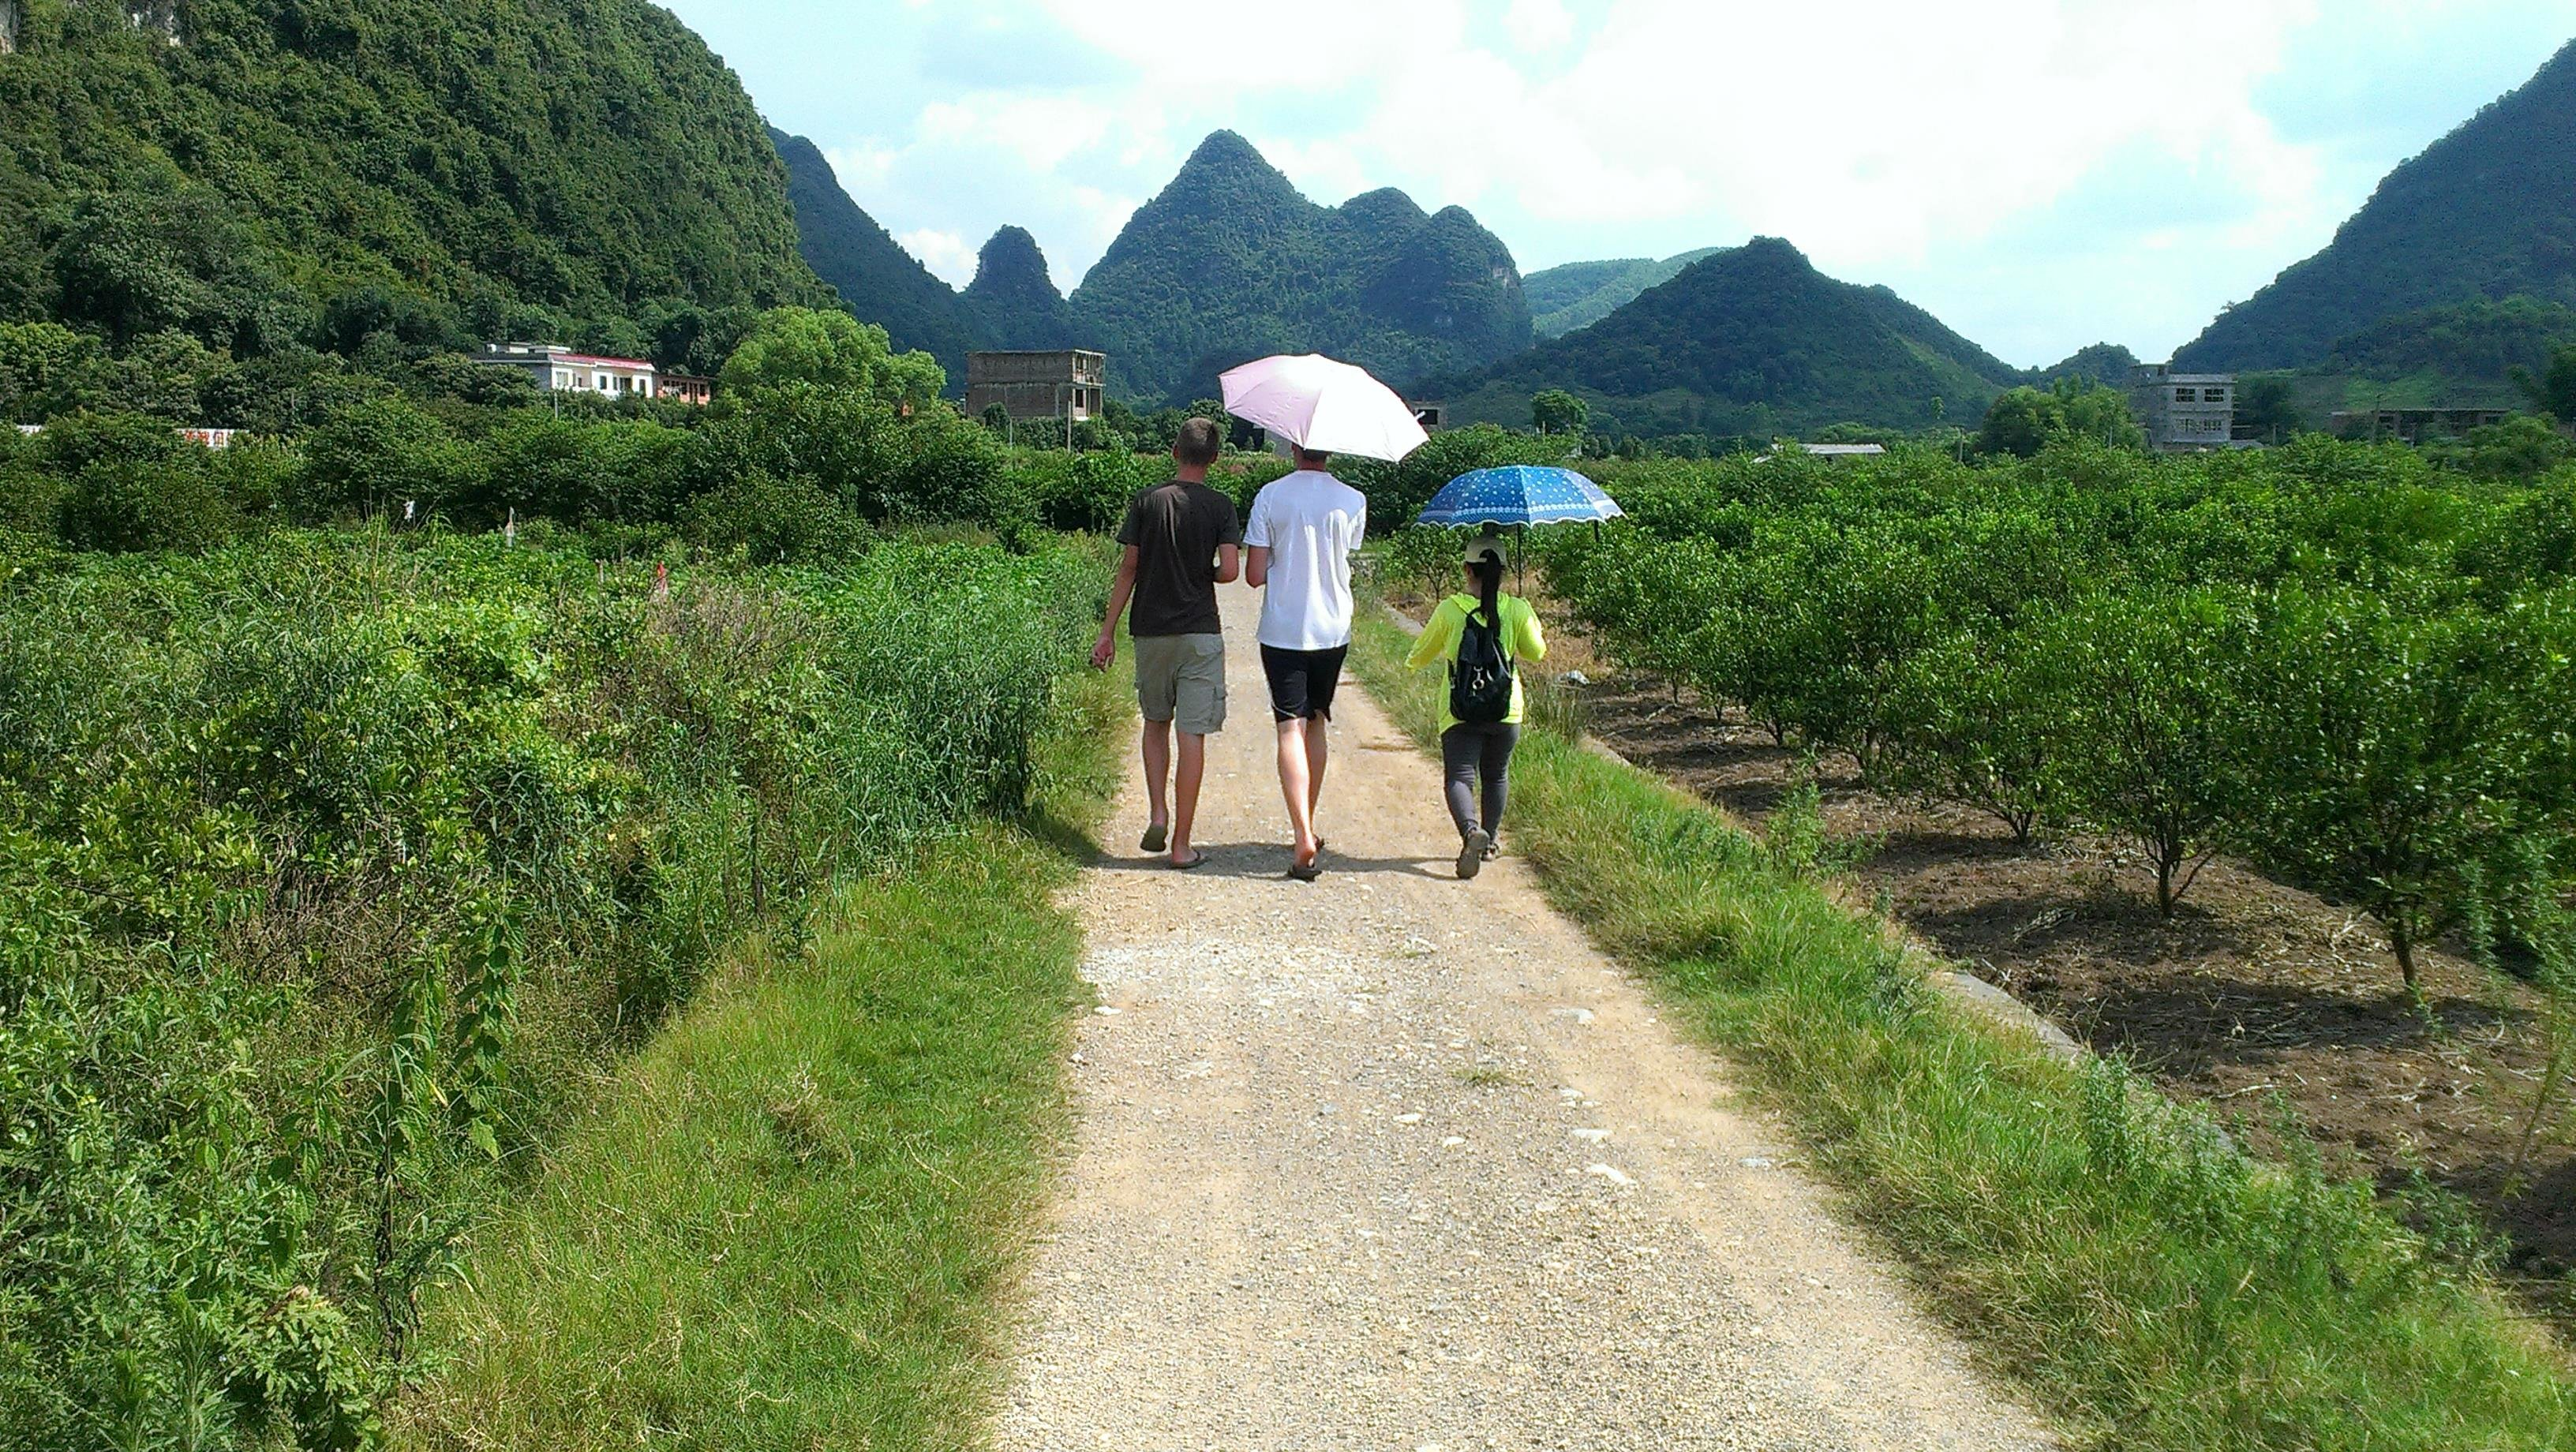 Hiking around Yangshuo's countryside